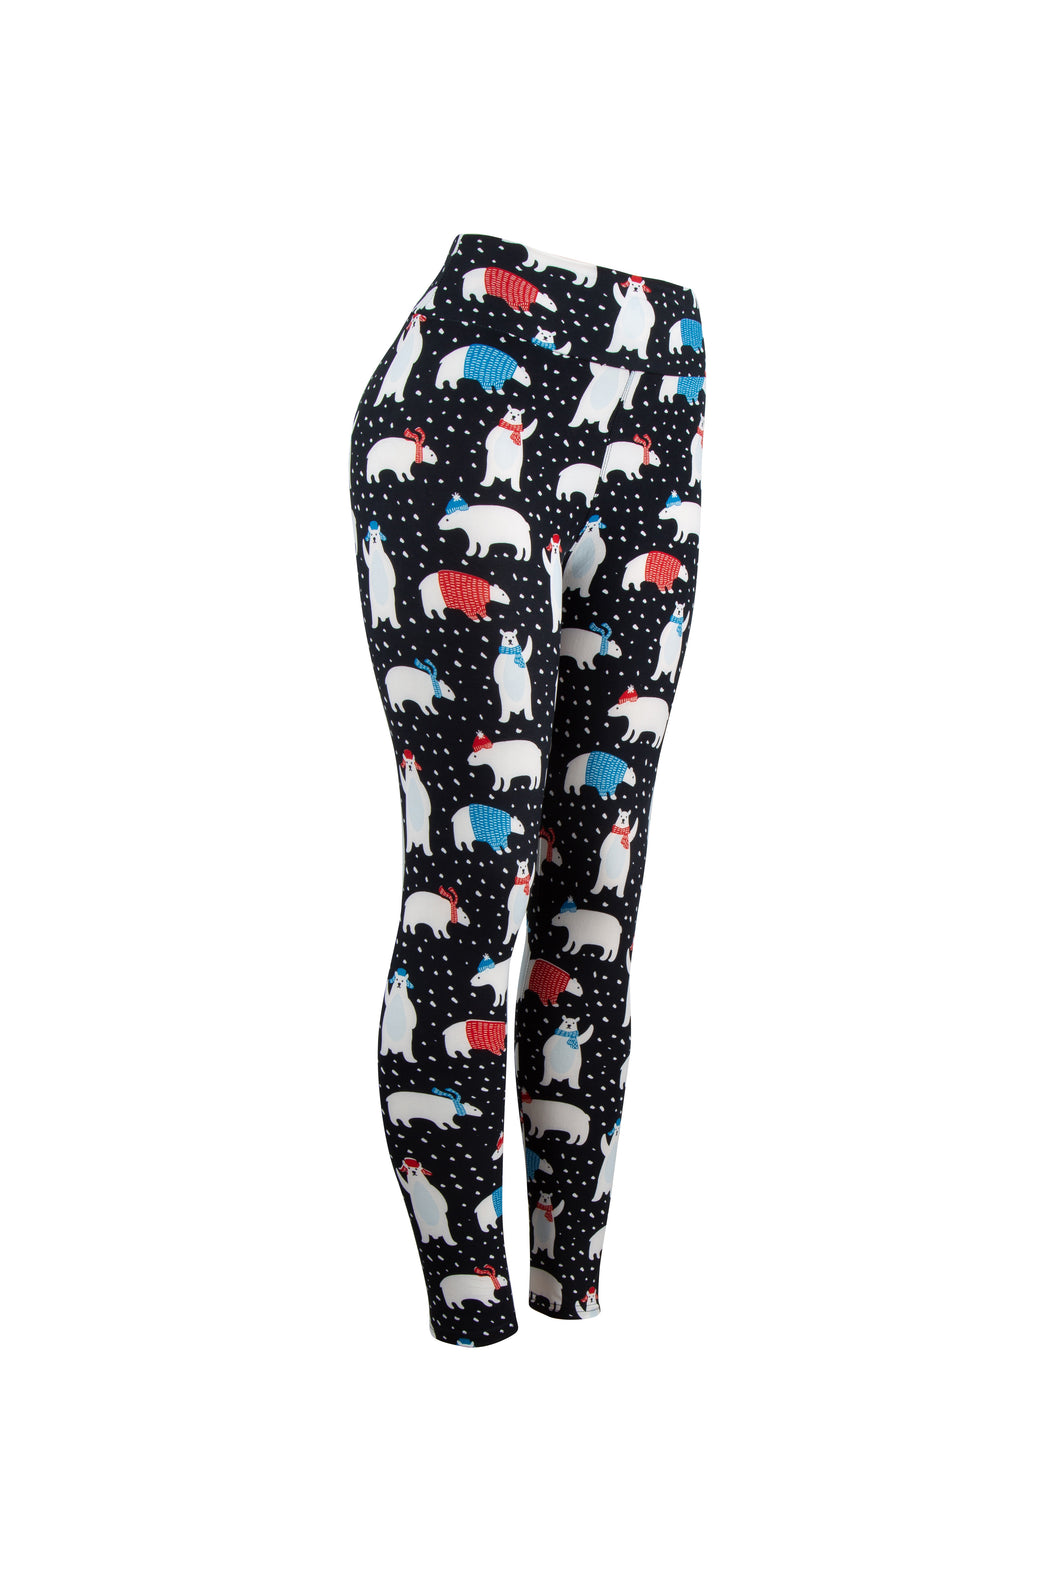 Natopia Polar Bear Christmas Leggings Curvy Plus Size Fits 16-22 LIMITED STOCK AVAILABLE